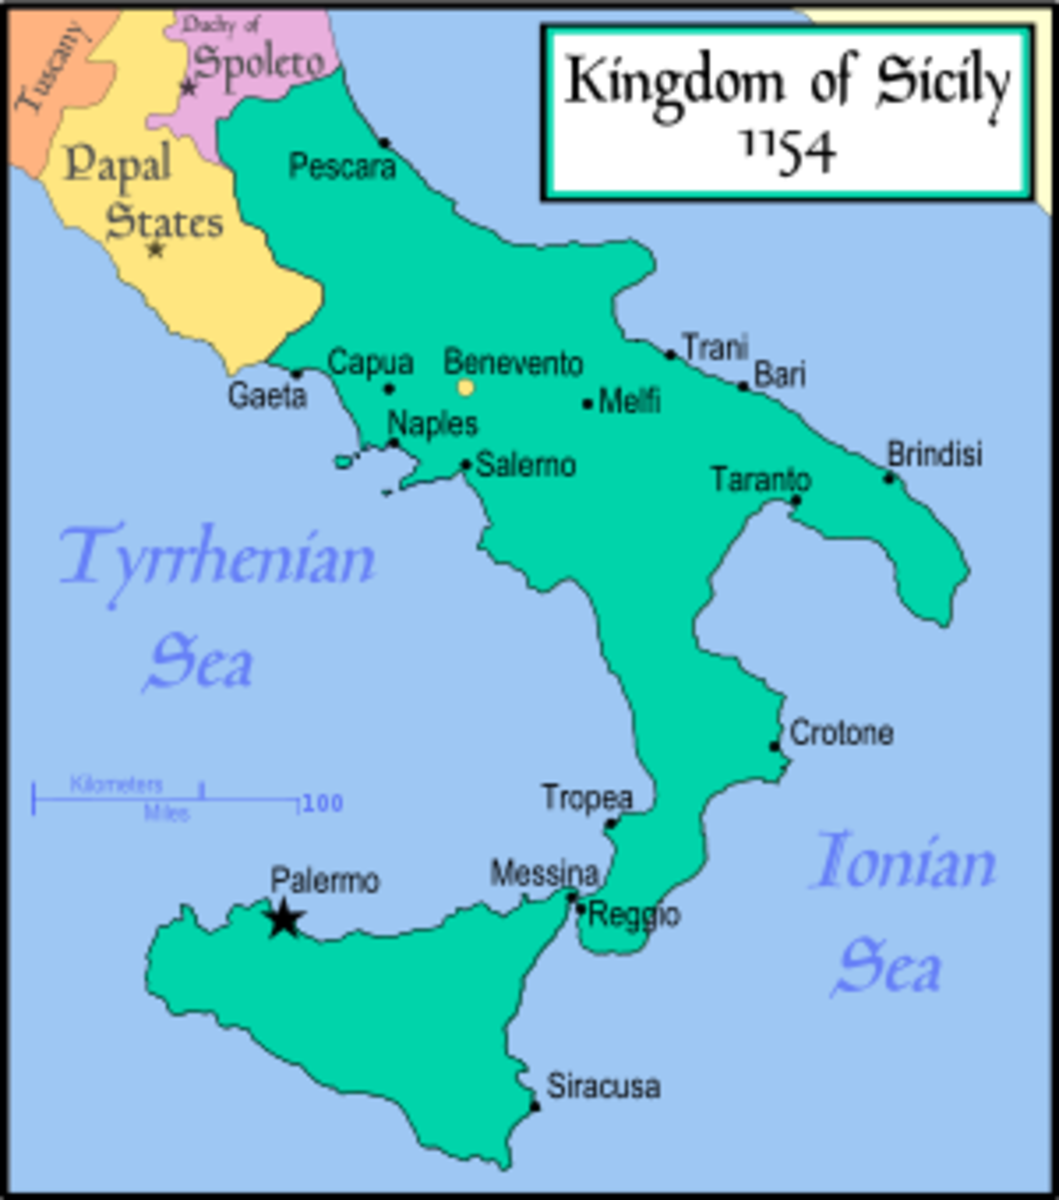 When the Norman conquered Southern Italy the castle of Monteserico that today is situated on the boundary between Basilicata and Apulia plaid a large part in ruling over the Norman conquests.